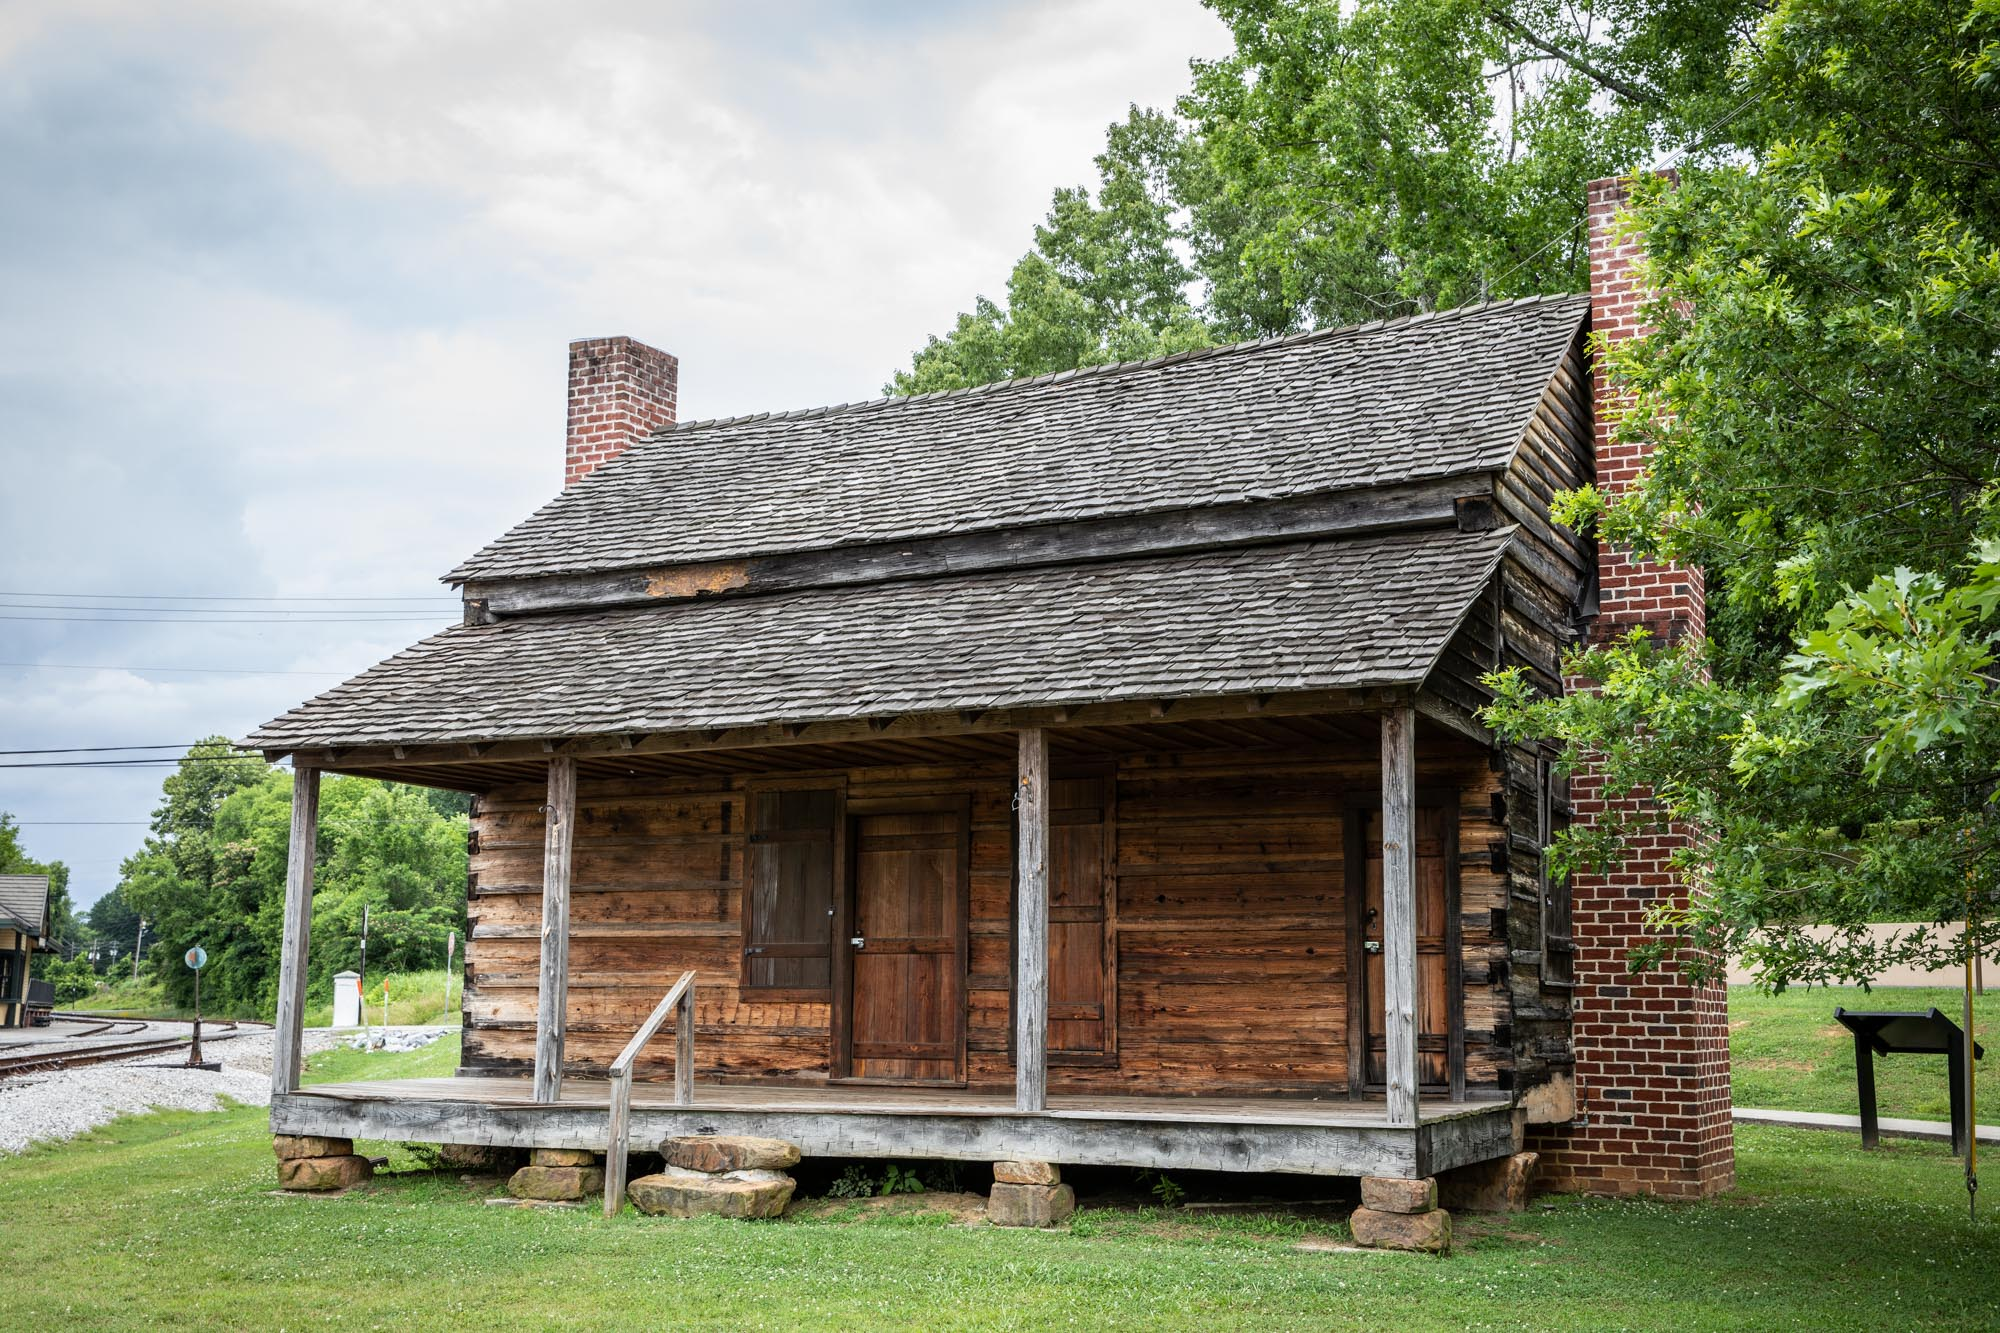 Couey House in Dowdy park.